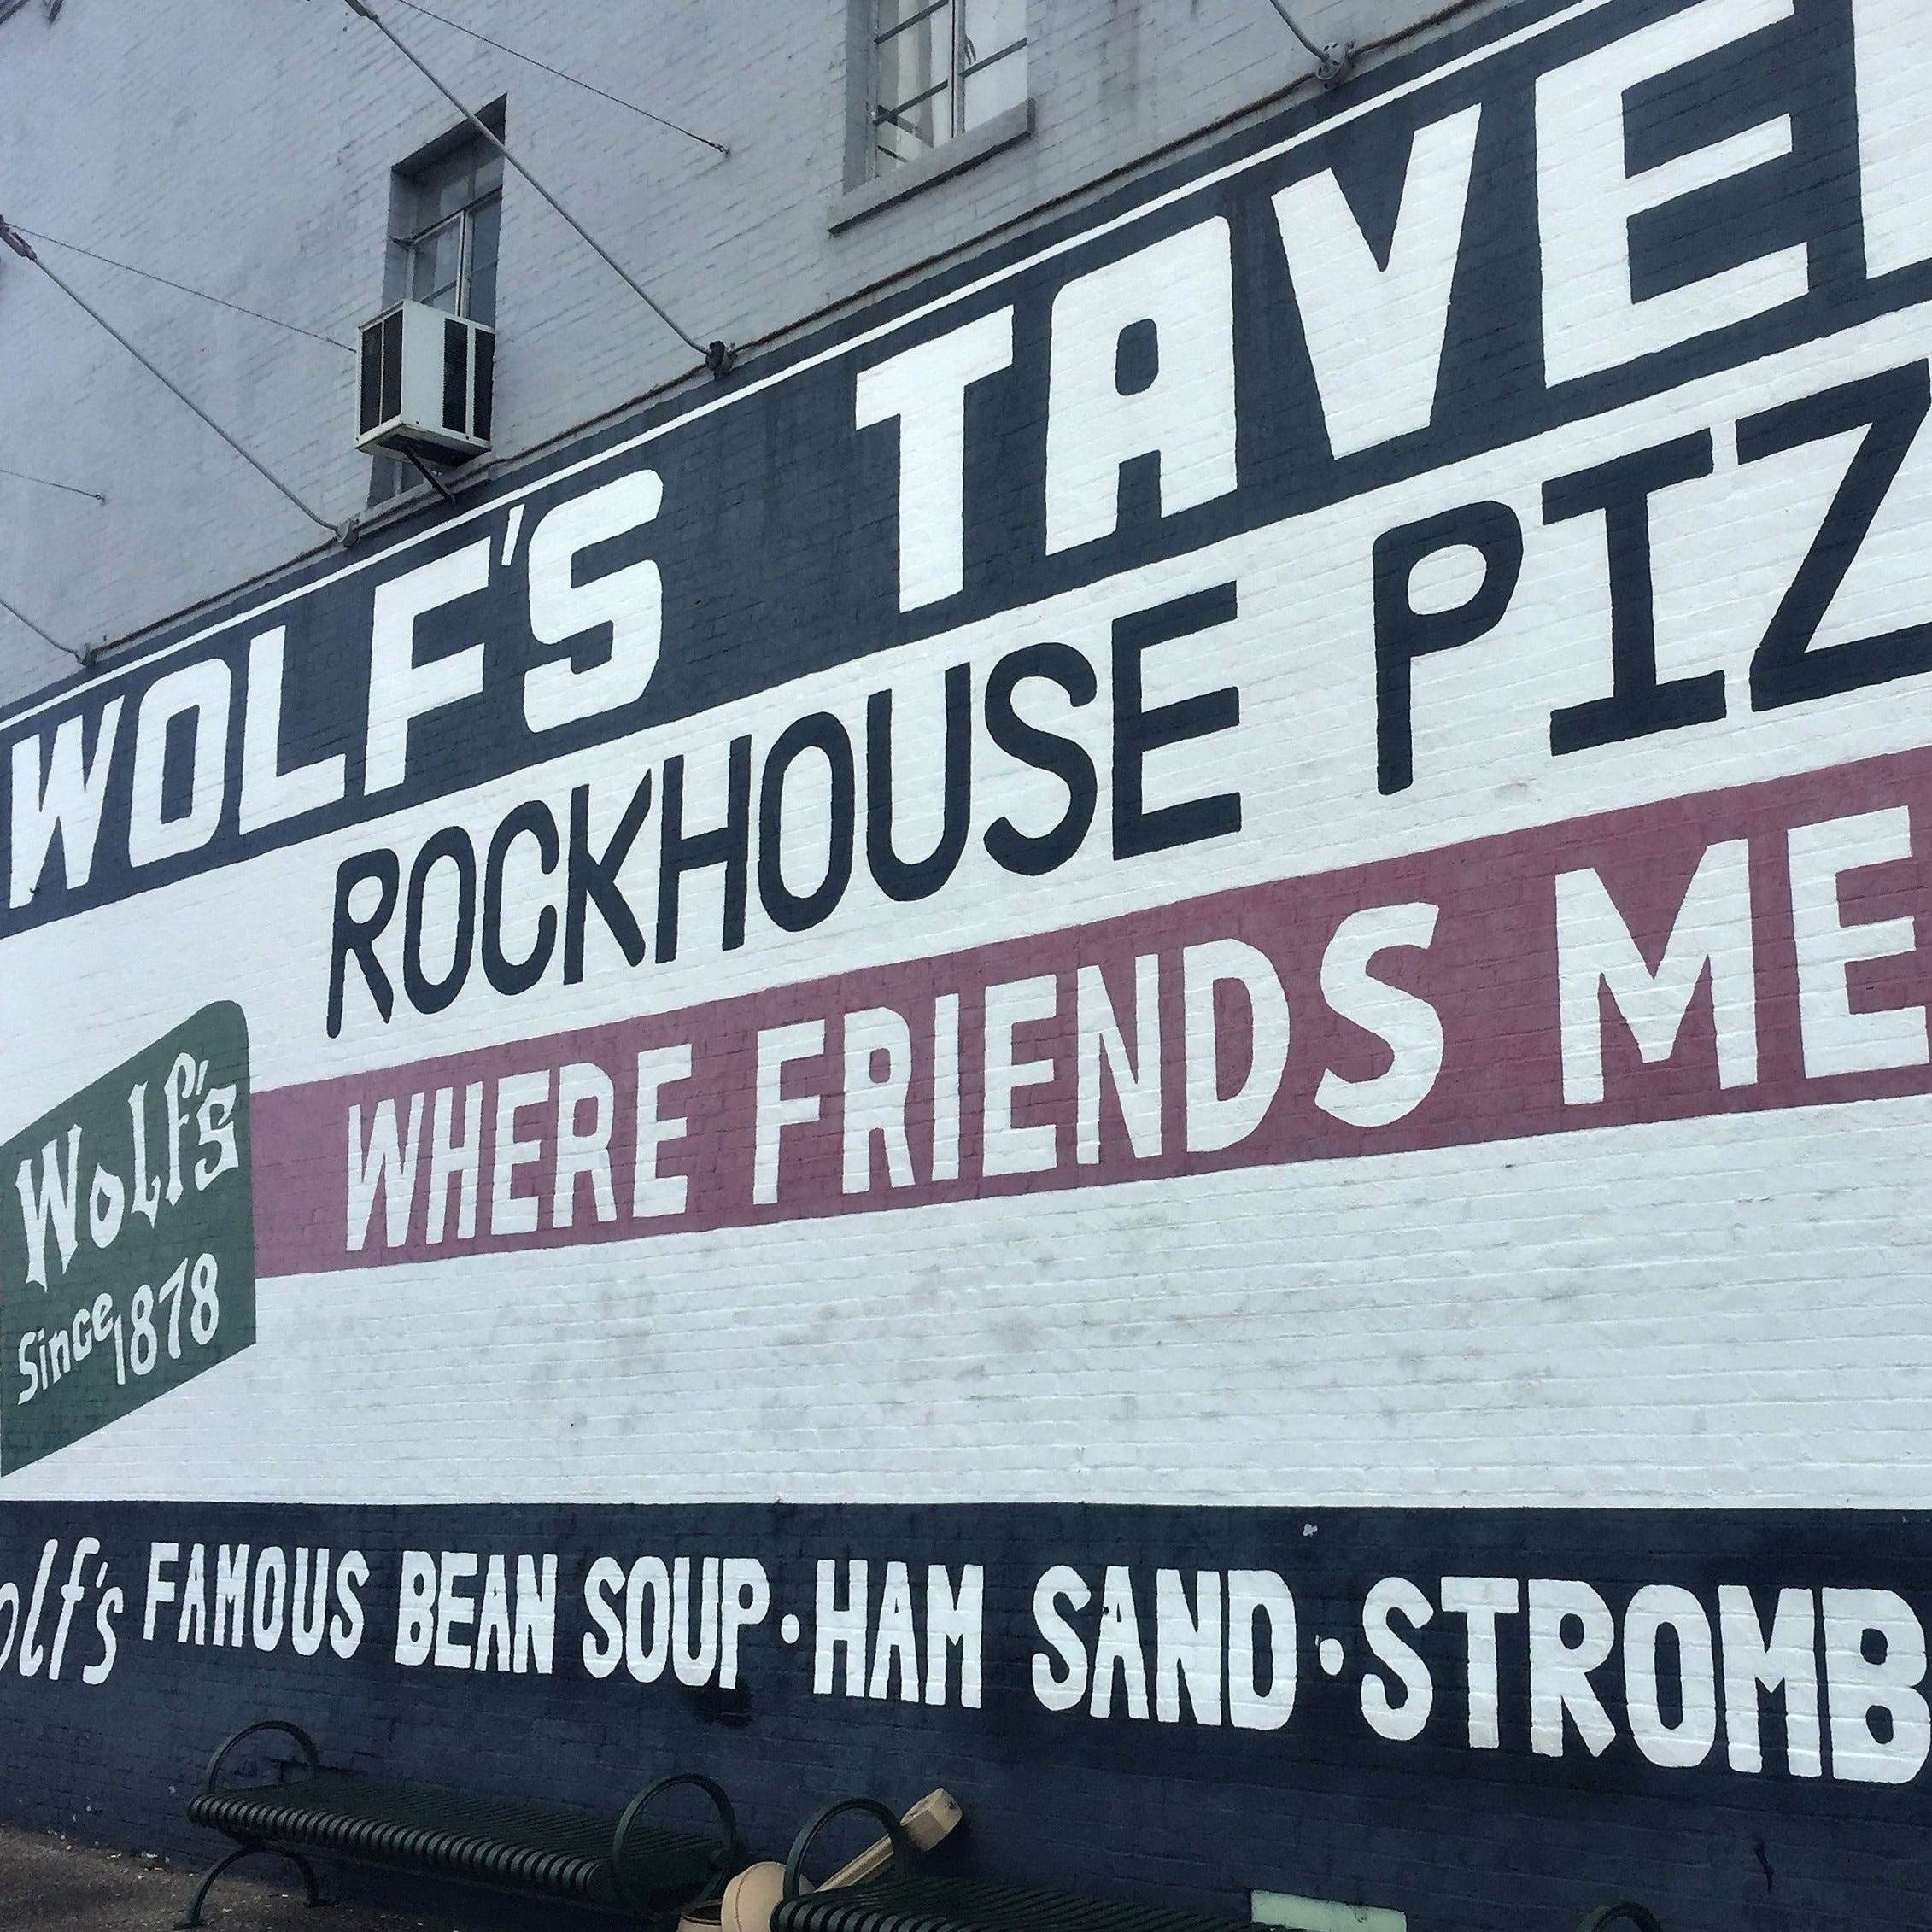 Rockhouse Pizza at Wolf's in Henderson moving to new riverfront home